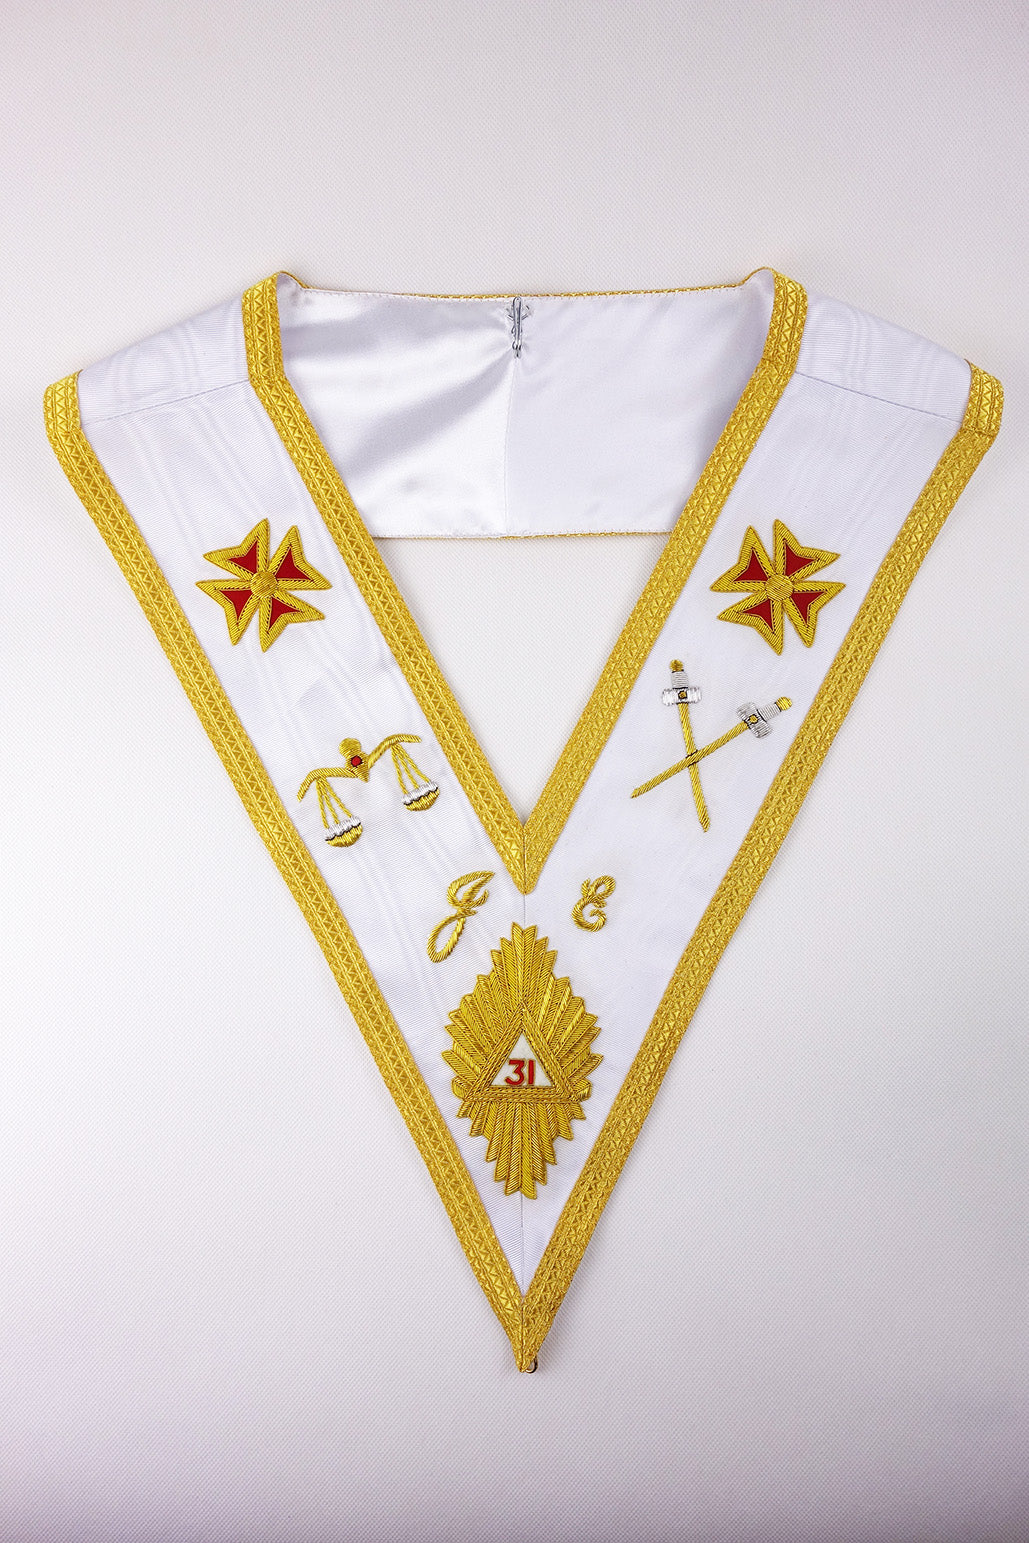 Australian Constitution 31st Degree Collar